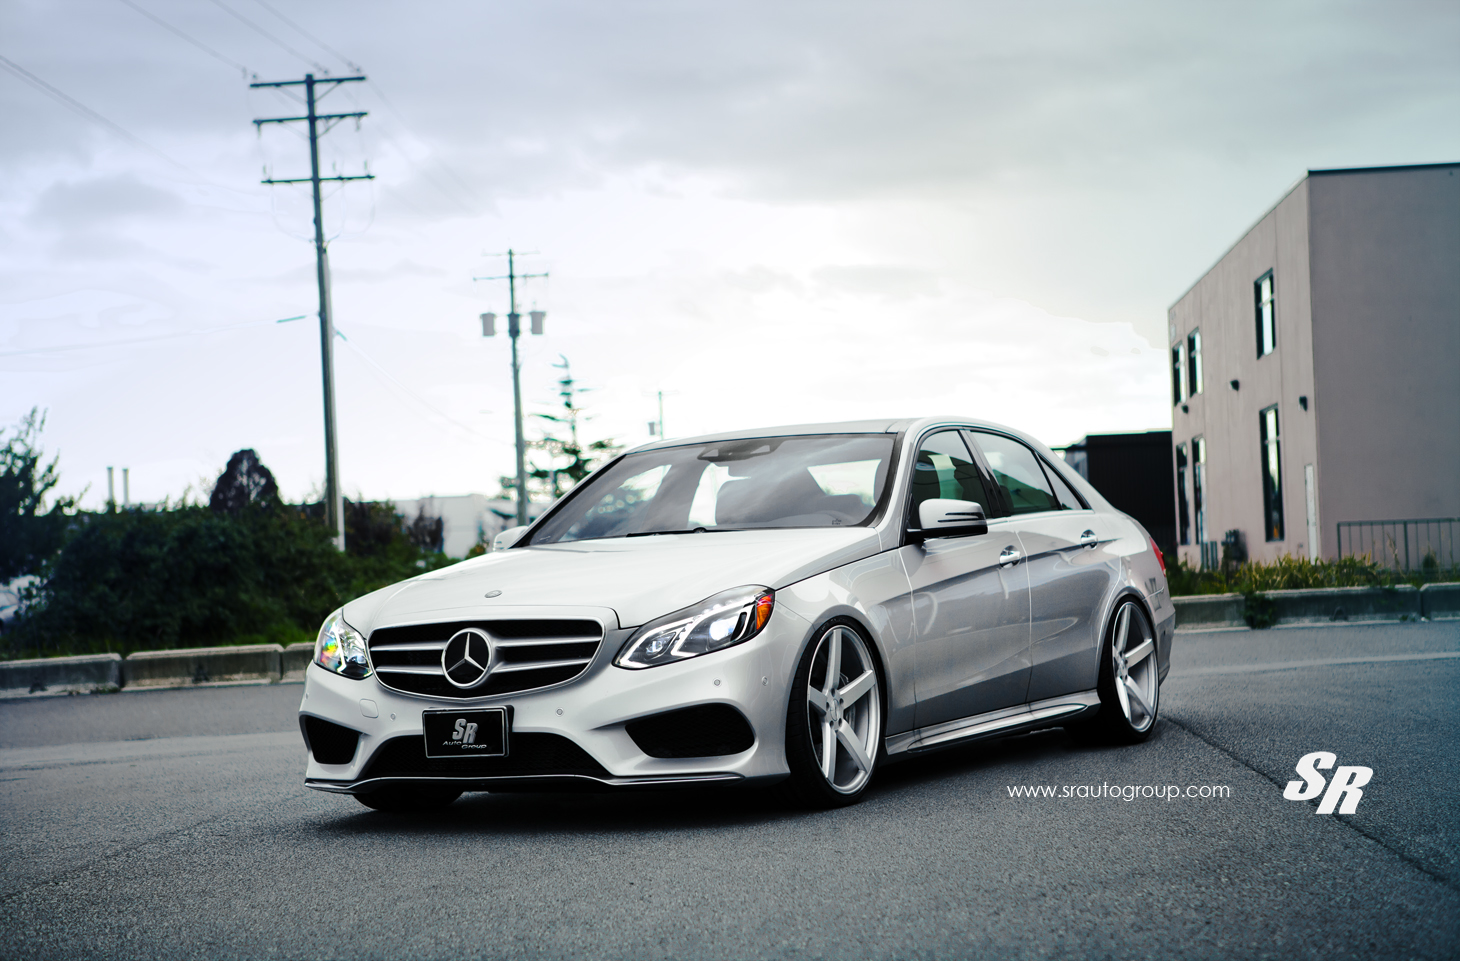 Audi Of Naples >> 2015 C Class with AMG Styling Pack - MBWorld.org Forums